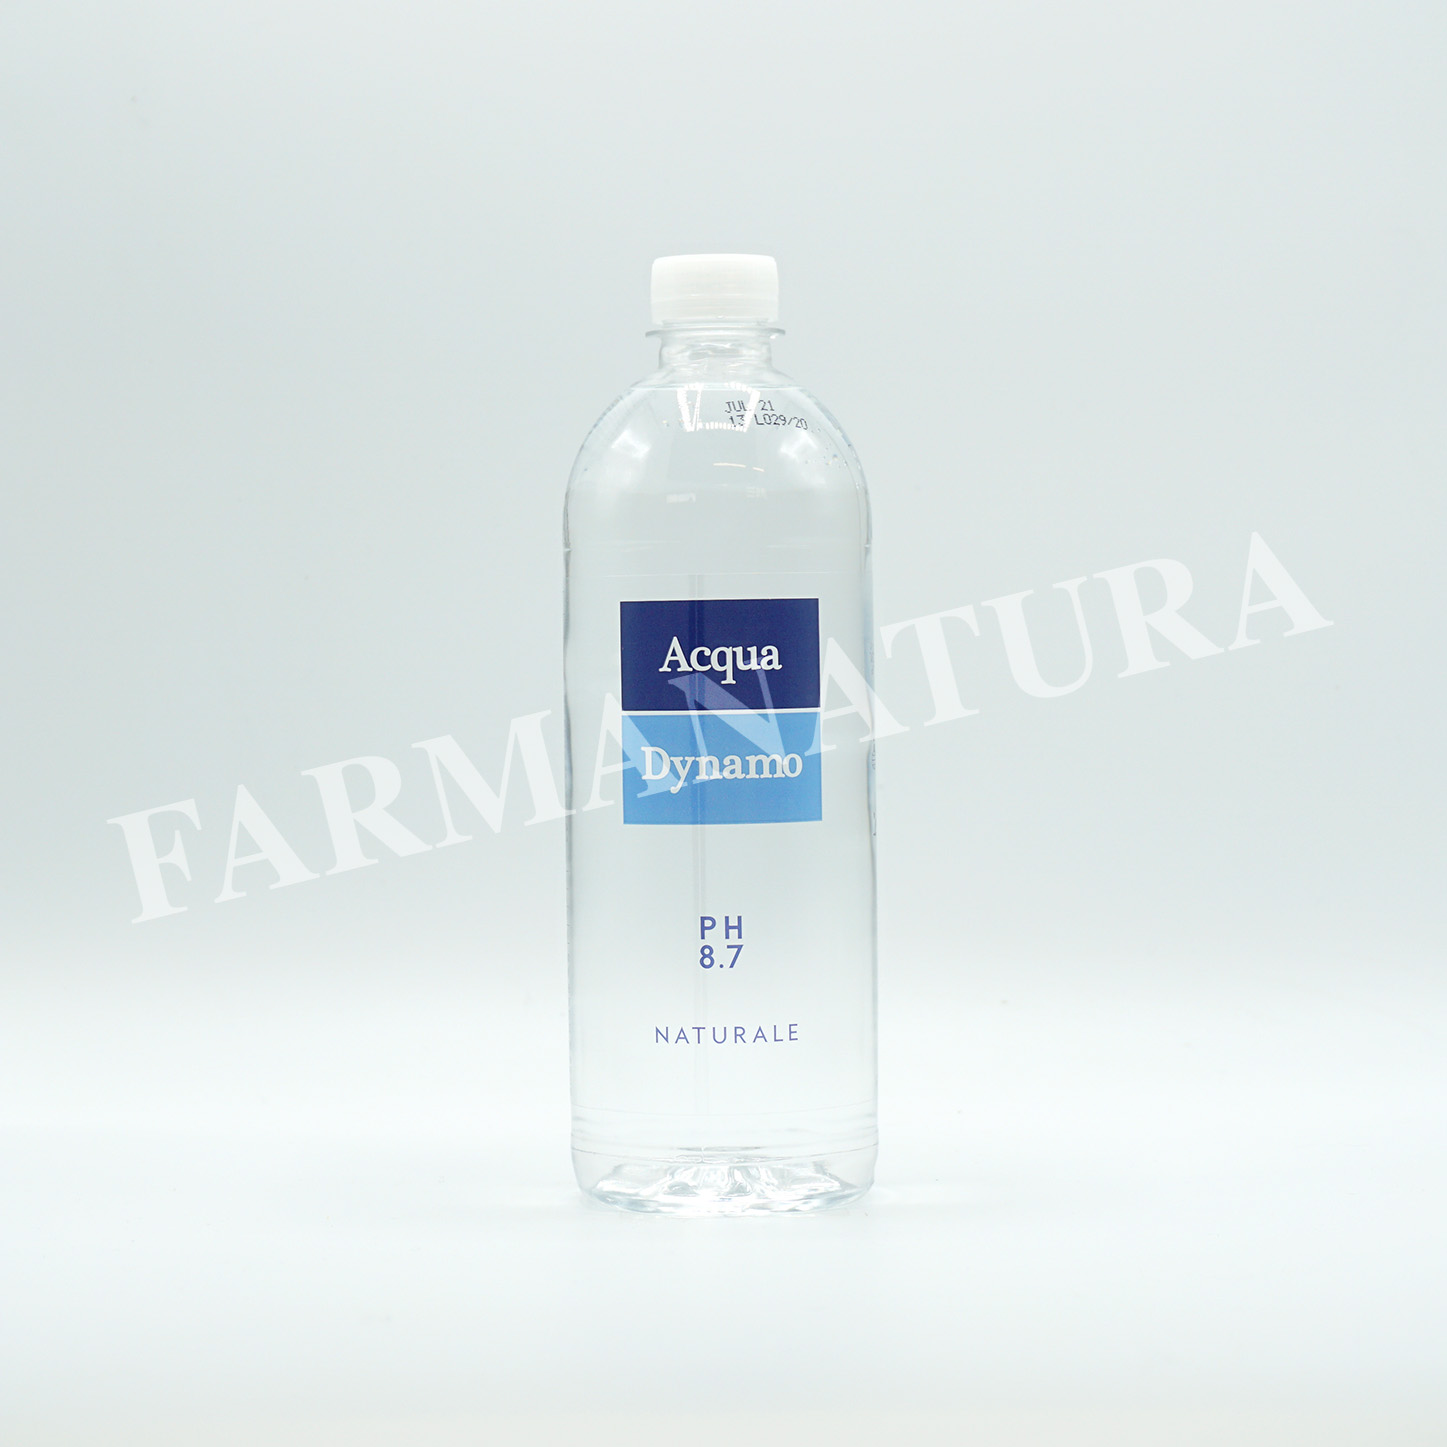 Acqua Dynamo Naturale 700Ml Ph8.4